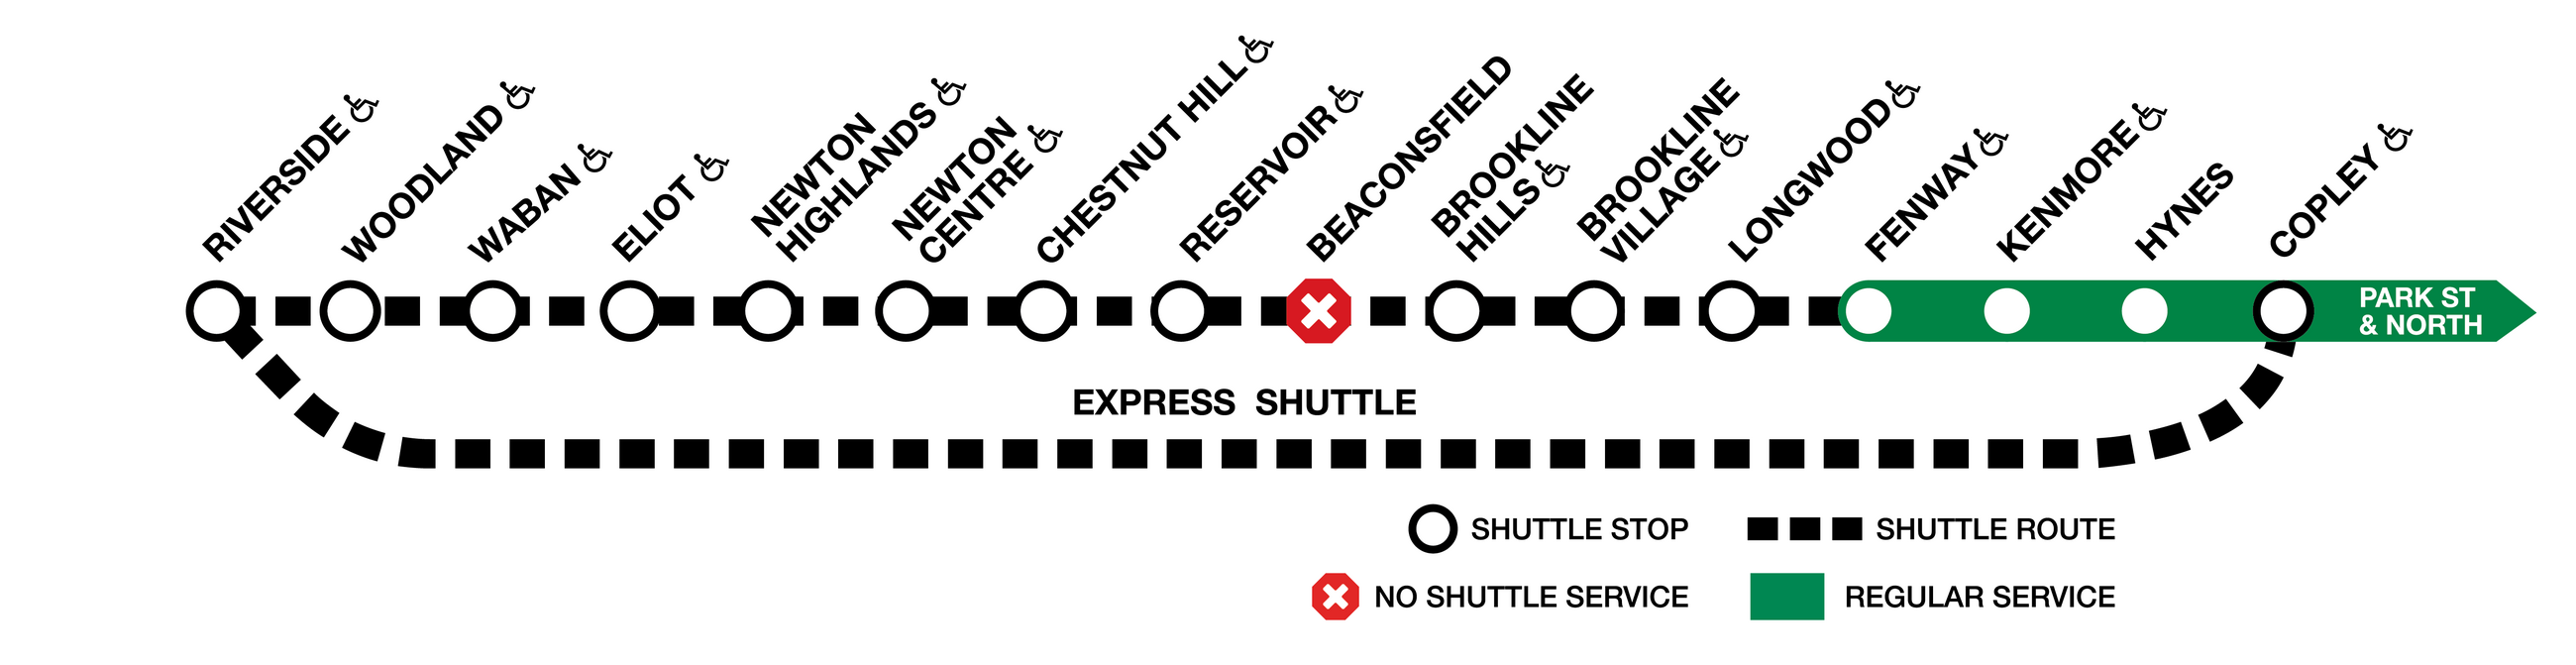 Bus shuttles run between Riverside and Fenway, with no shuttle service at Beaconsfield. An express shuttle runs directly from Riverside to Copley